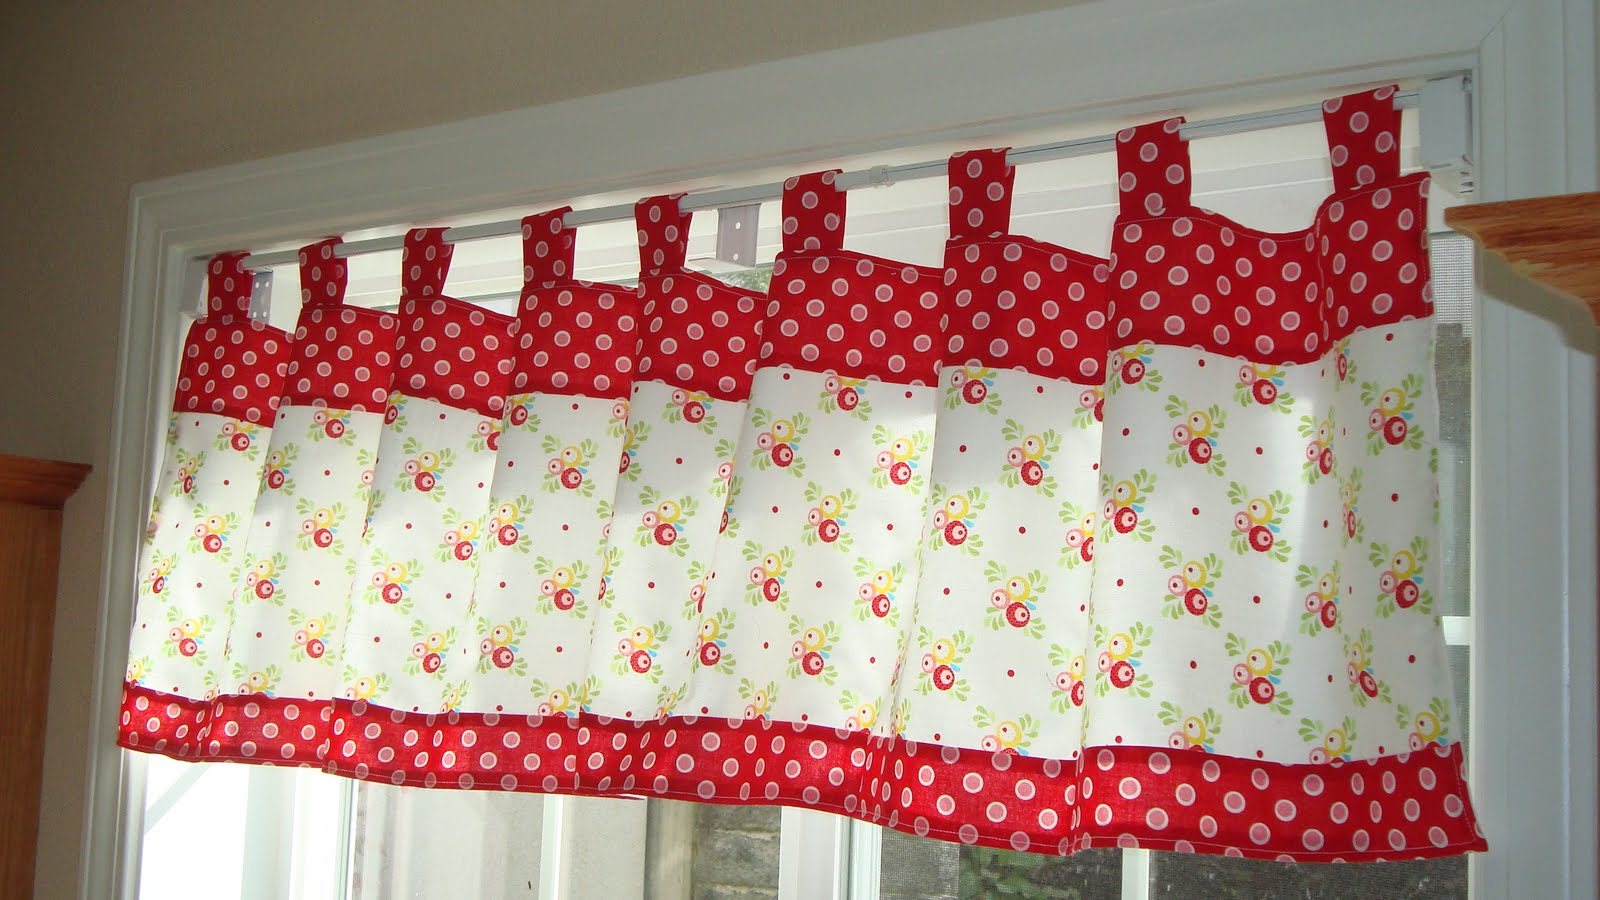 Christines Favorite Things Retro Kitchen Valance